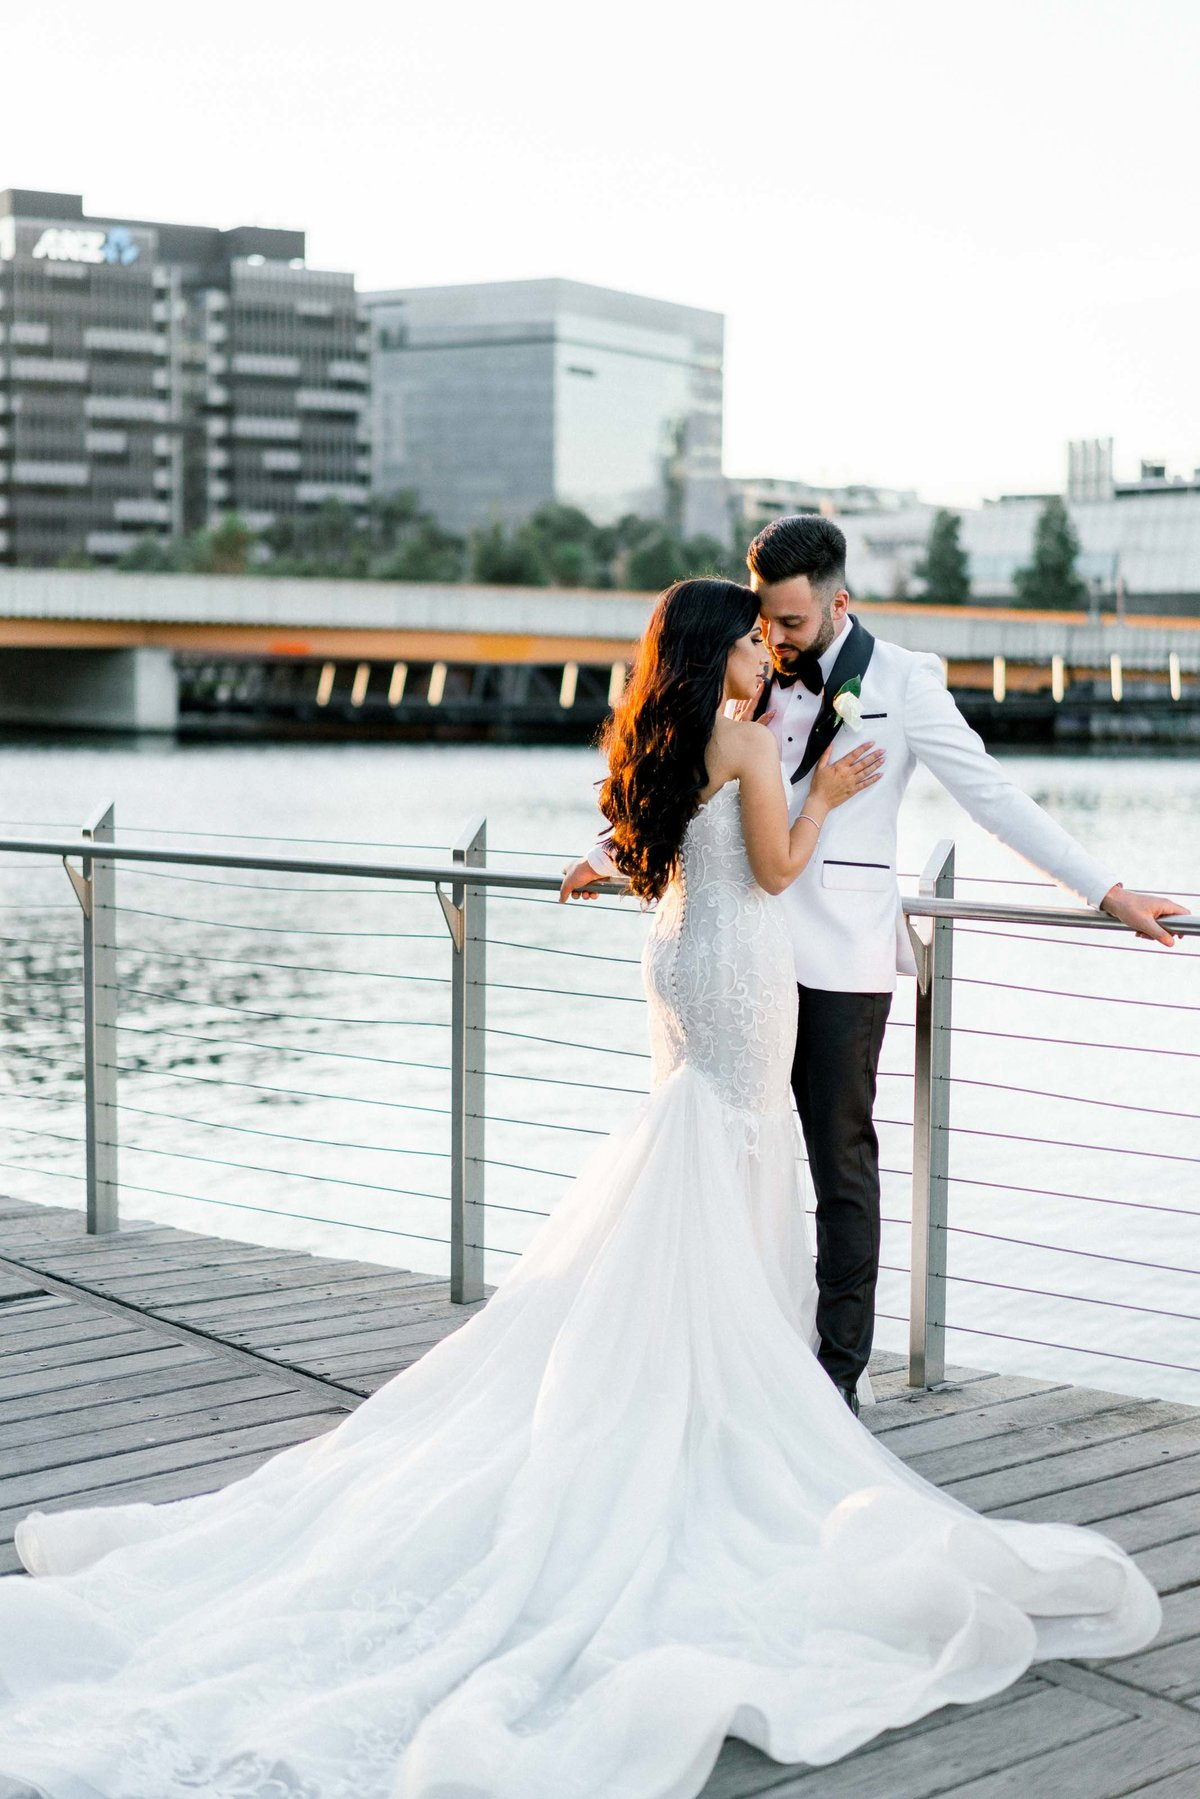 classy-romantic-wedding-melbourne-university-07465